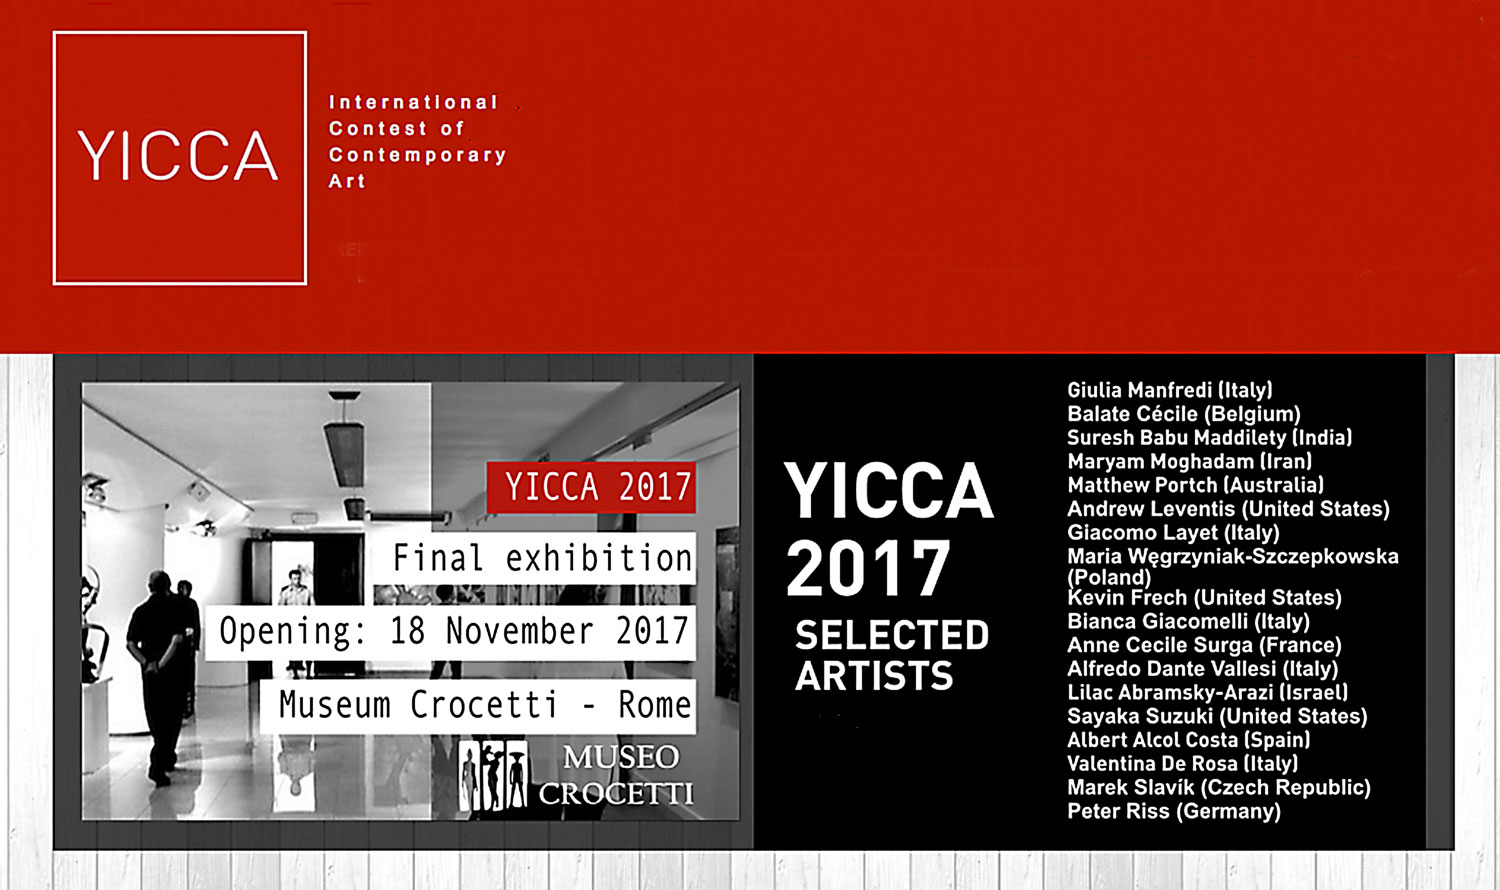 Yicca-Art-Contest